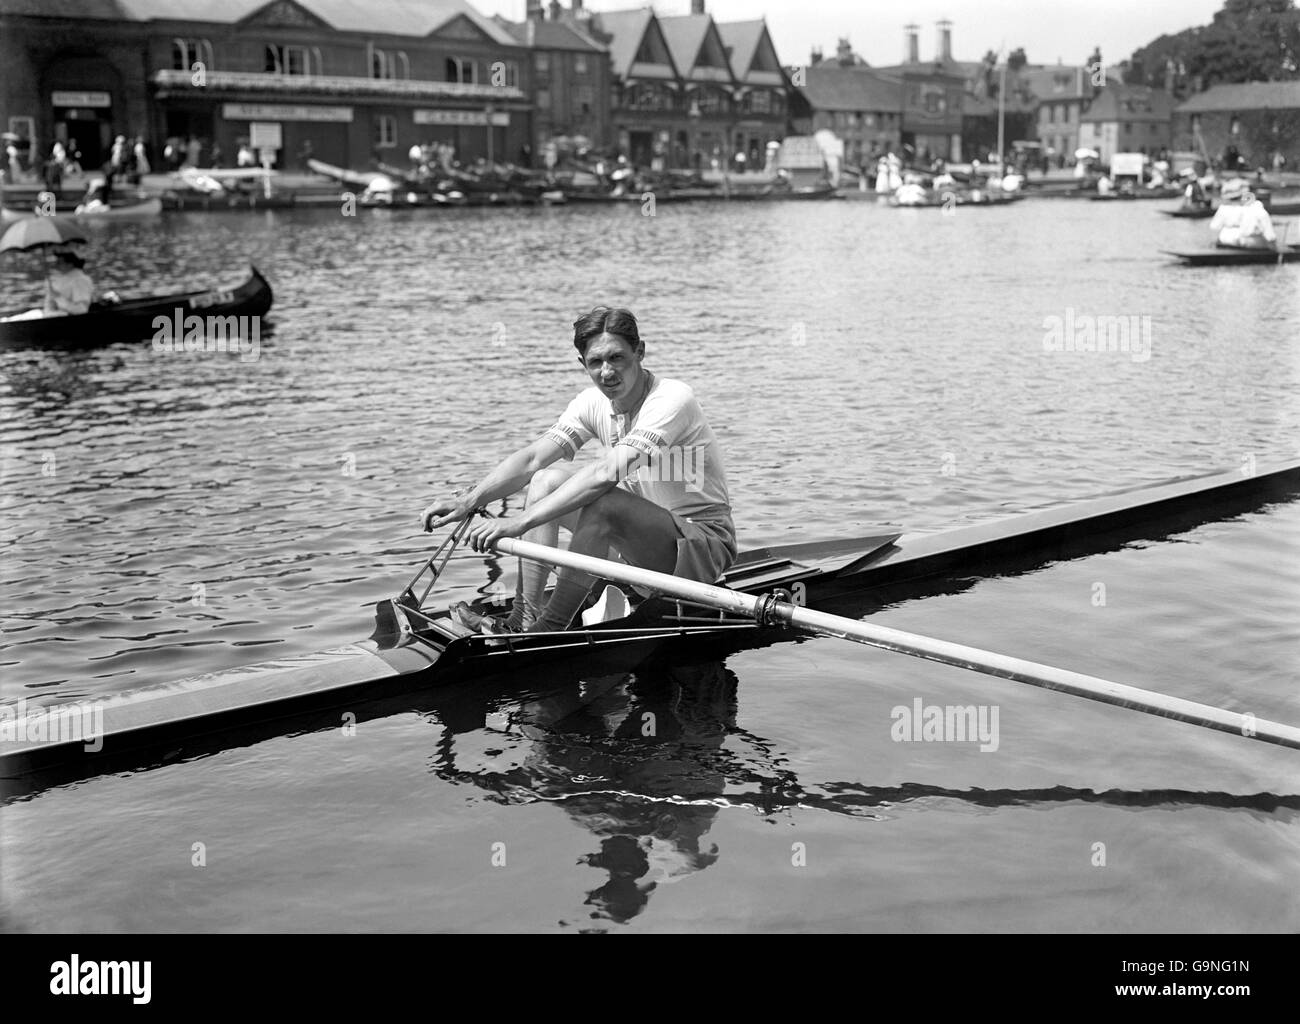 Rowing - London Olympic Games 1908 - Single Sculls - Henley - Stock Image